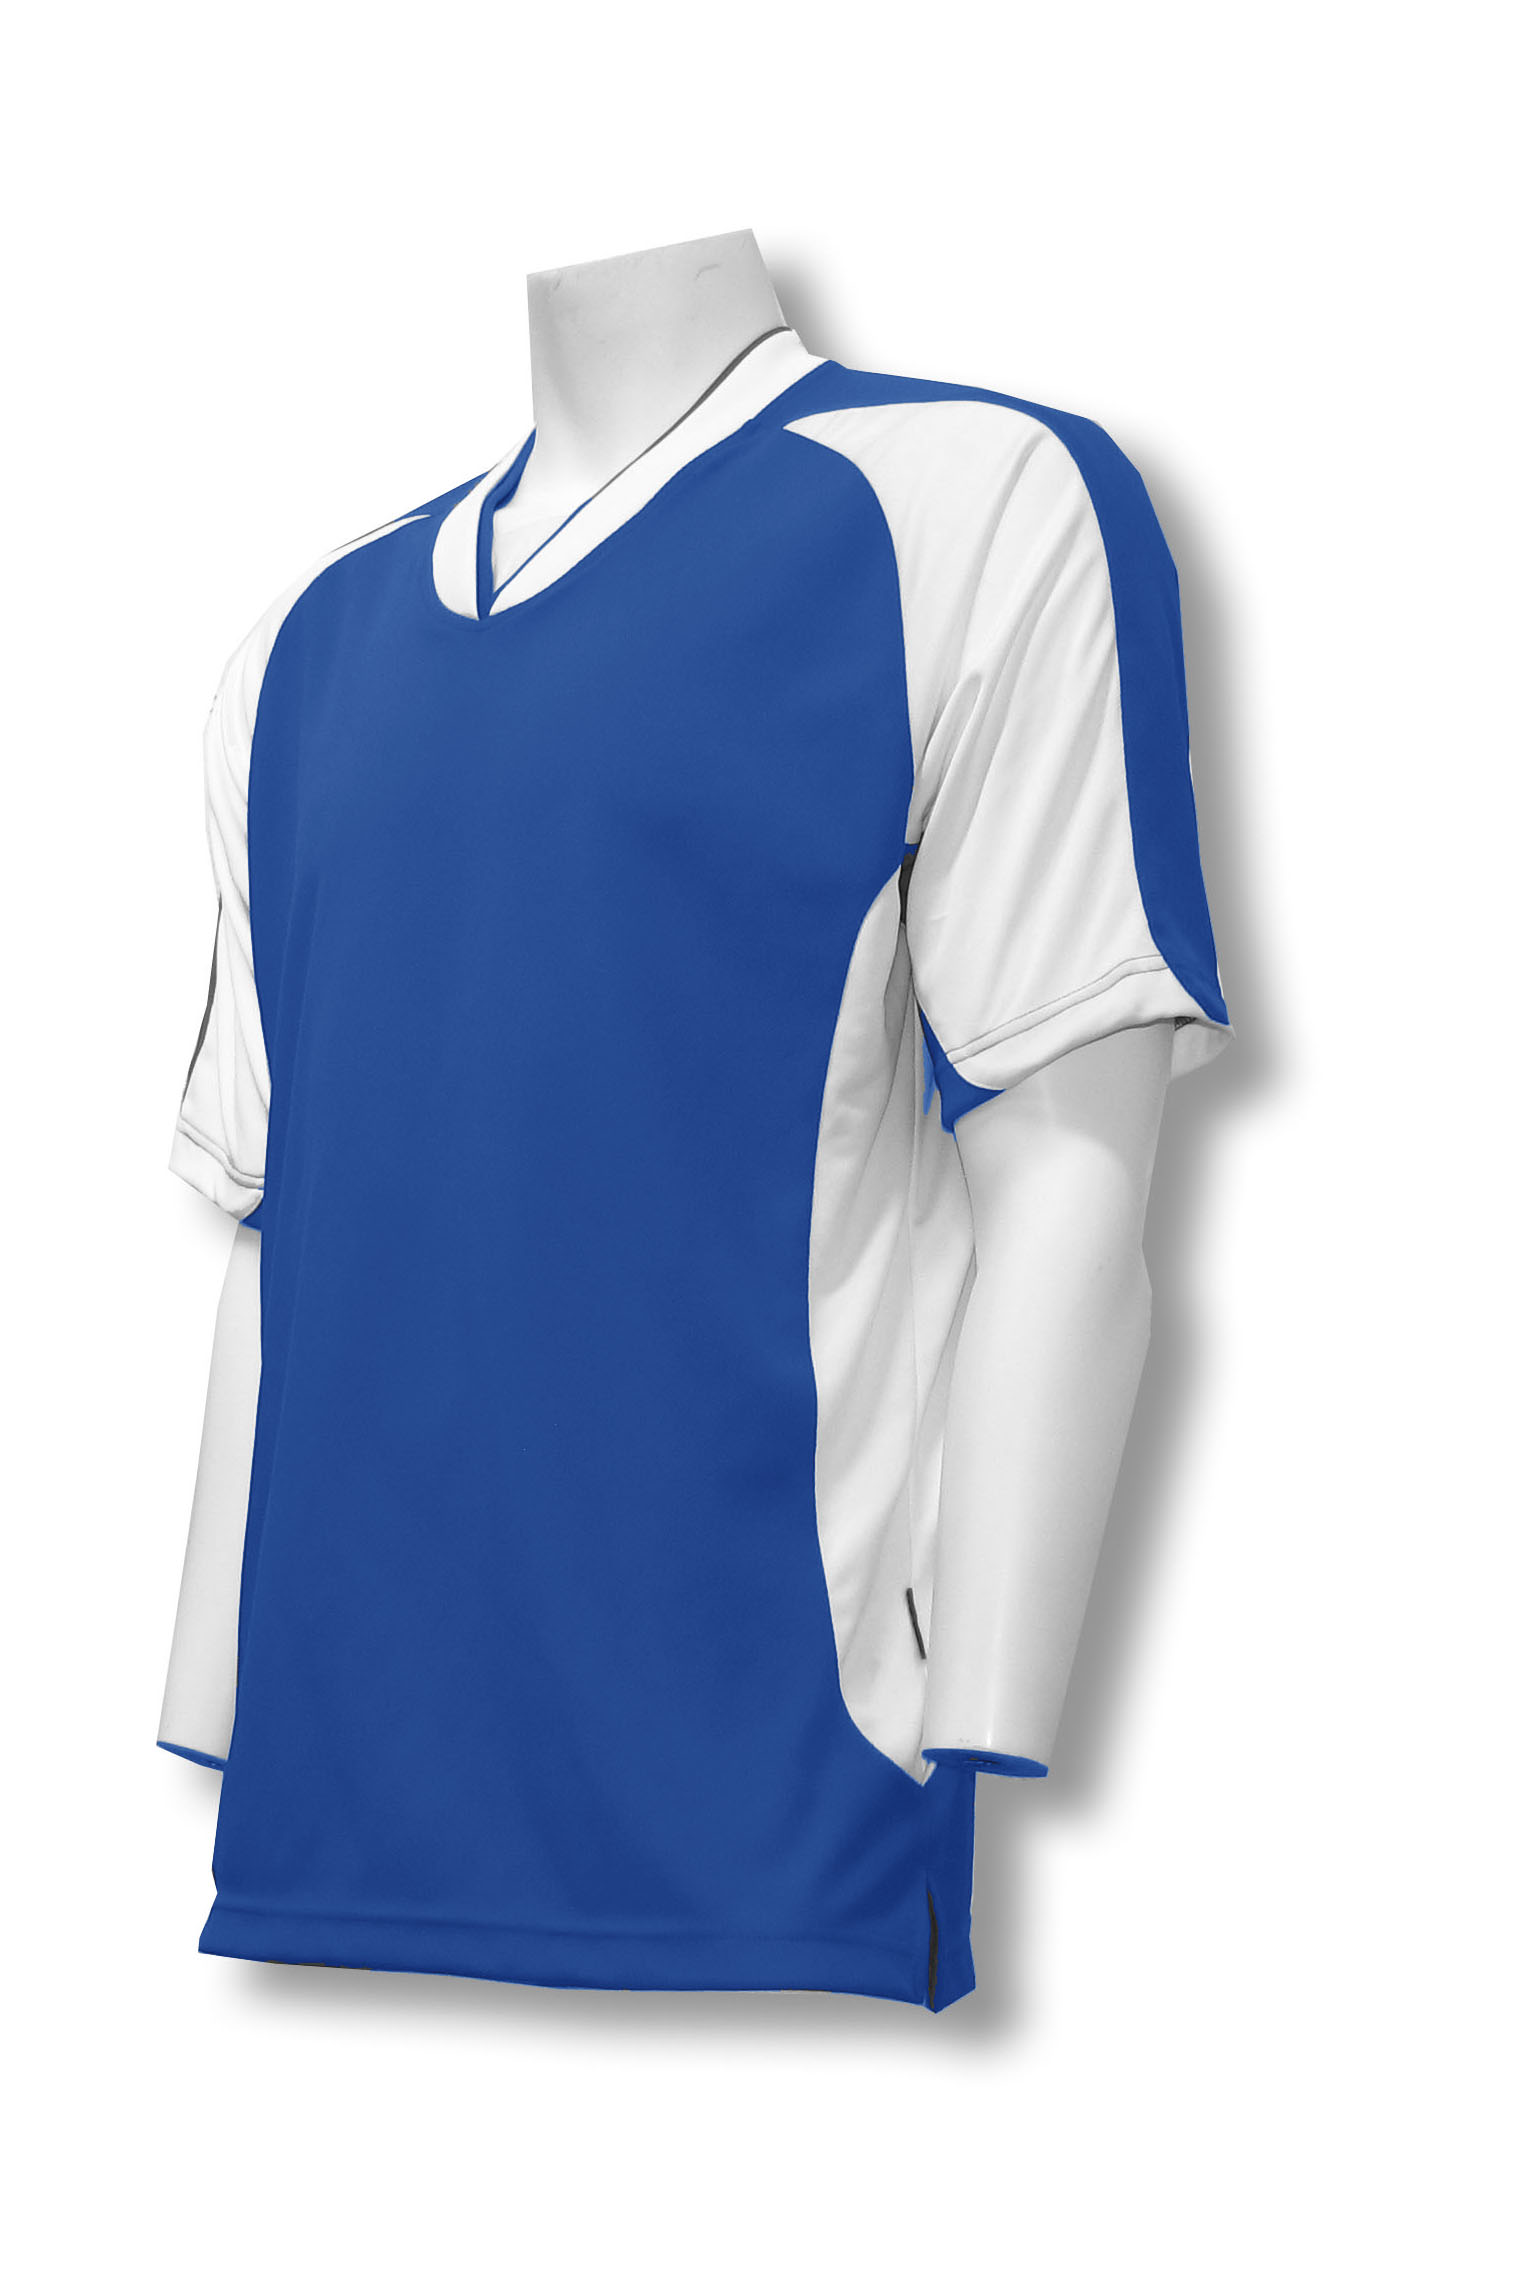 Sweeper / Falcon soccer jersey in royal by Code Four Athletics